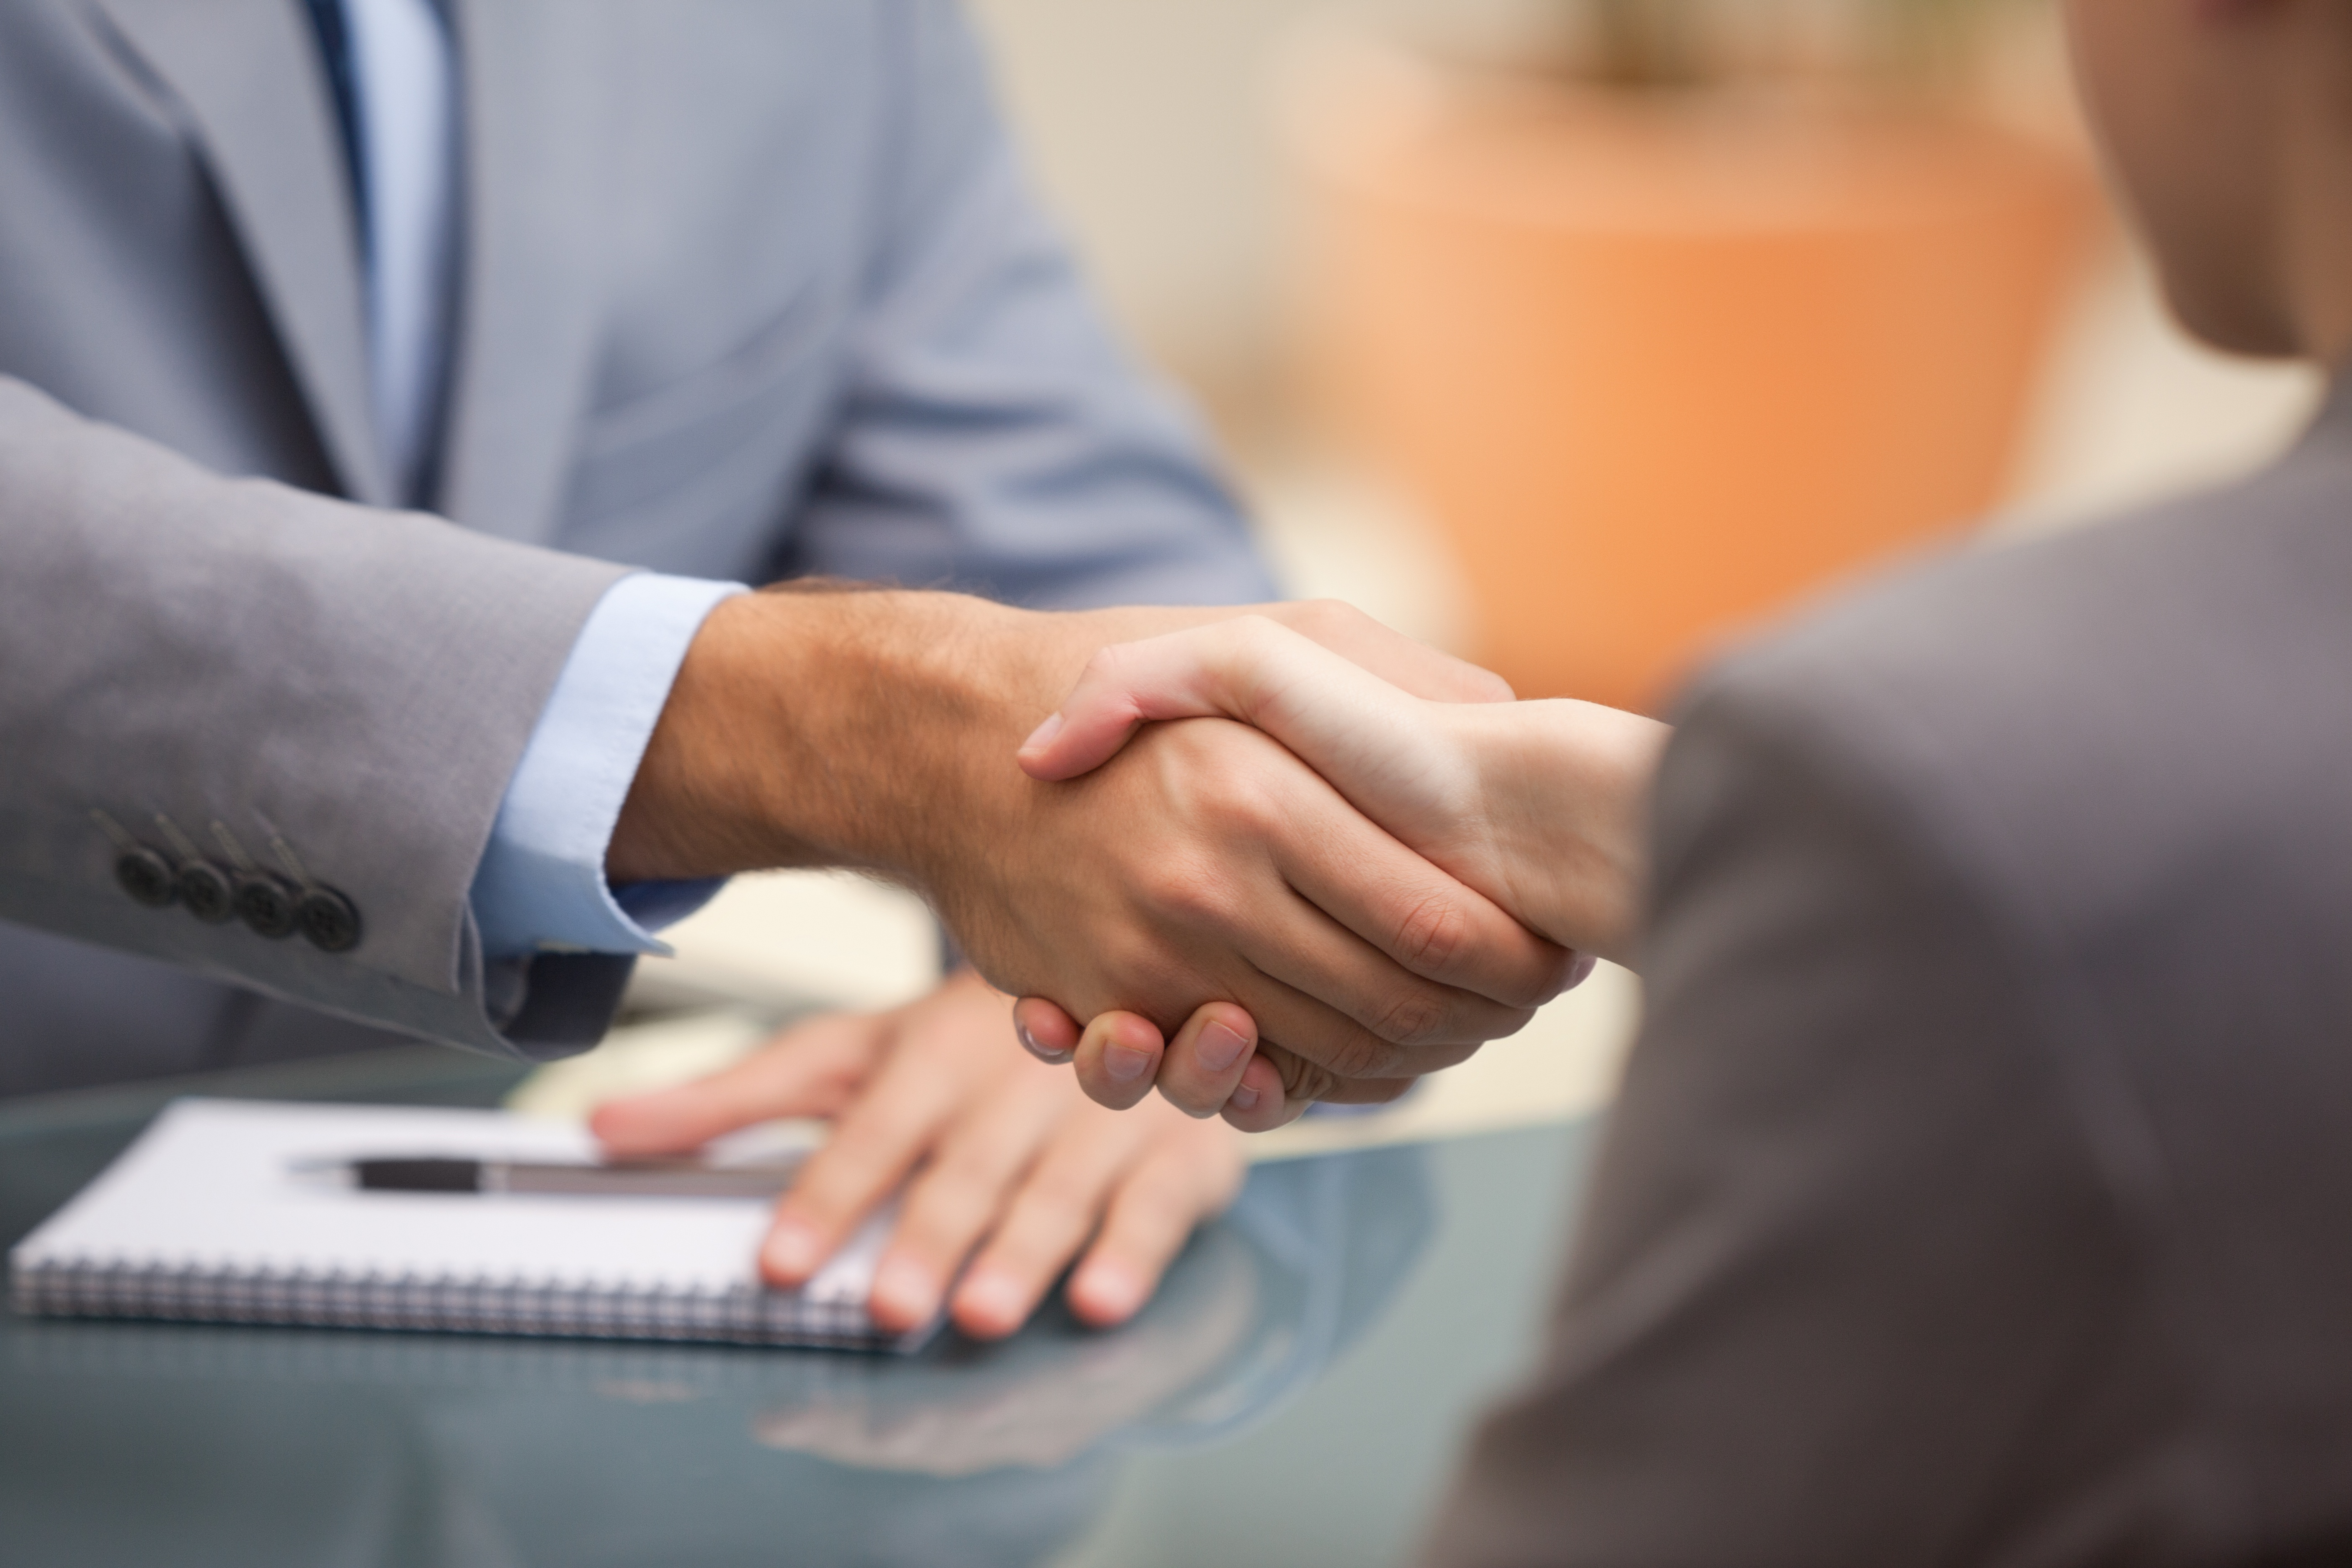 Stock Photo of a manager shaking hands with a new hire.